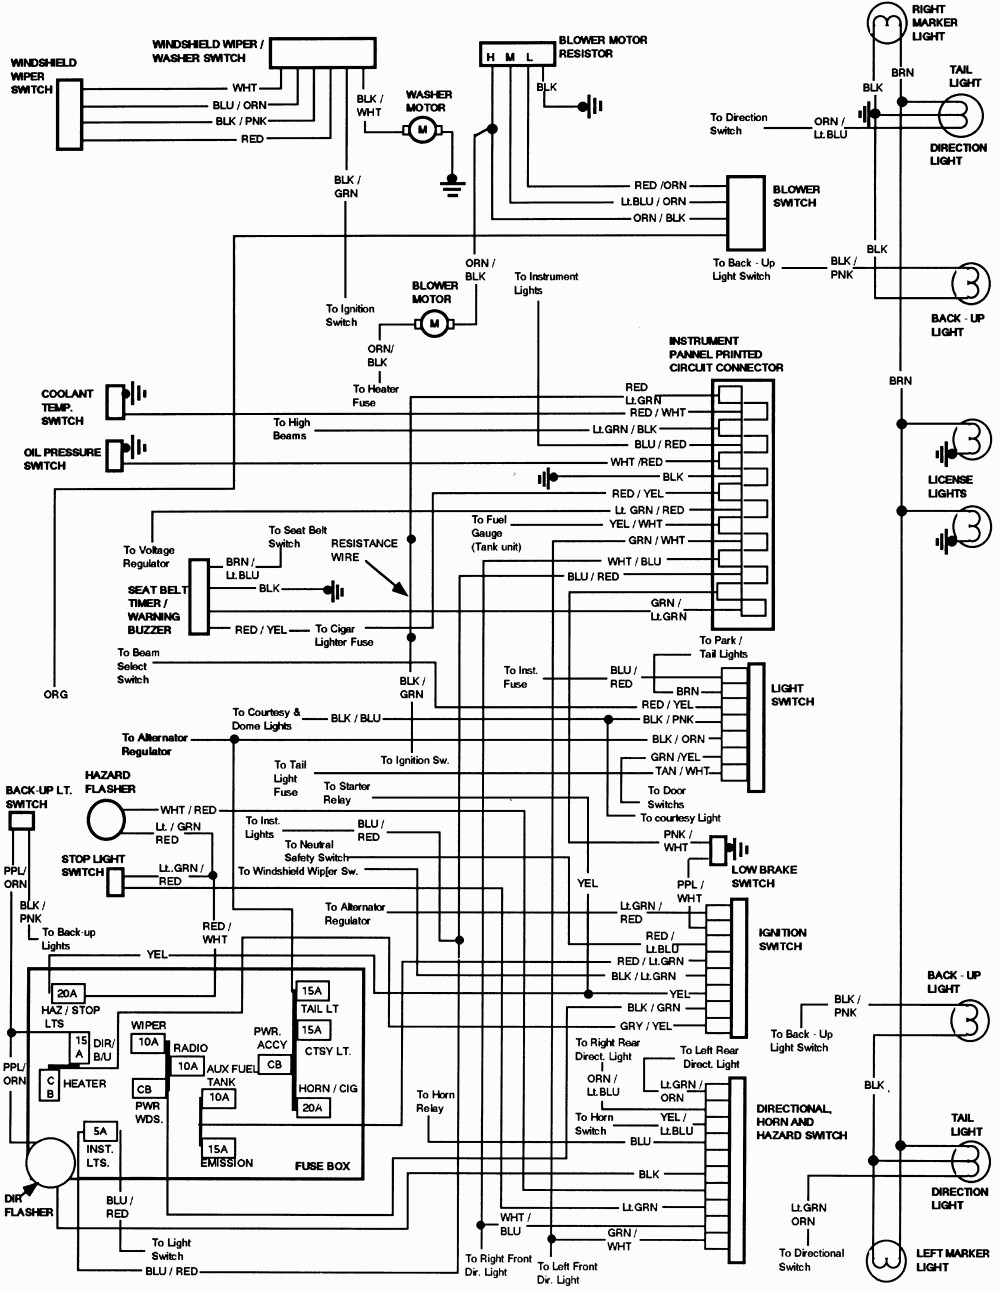 medium resolution of ford dlc wiring diagram wiring diagram schematic ford diagram wirings